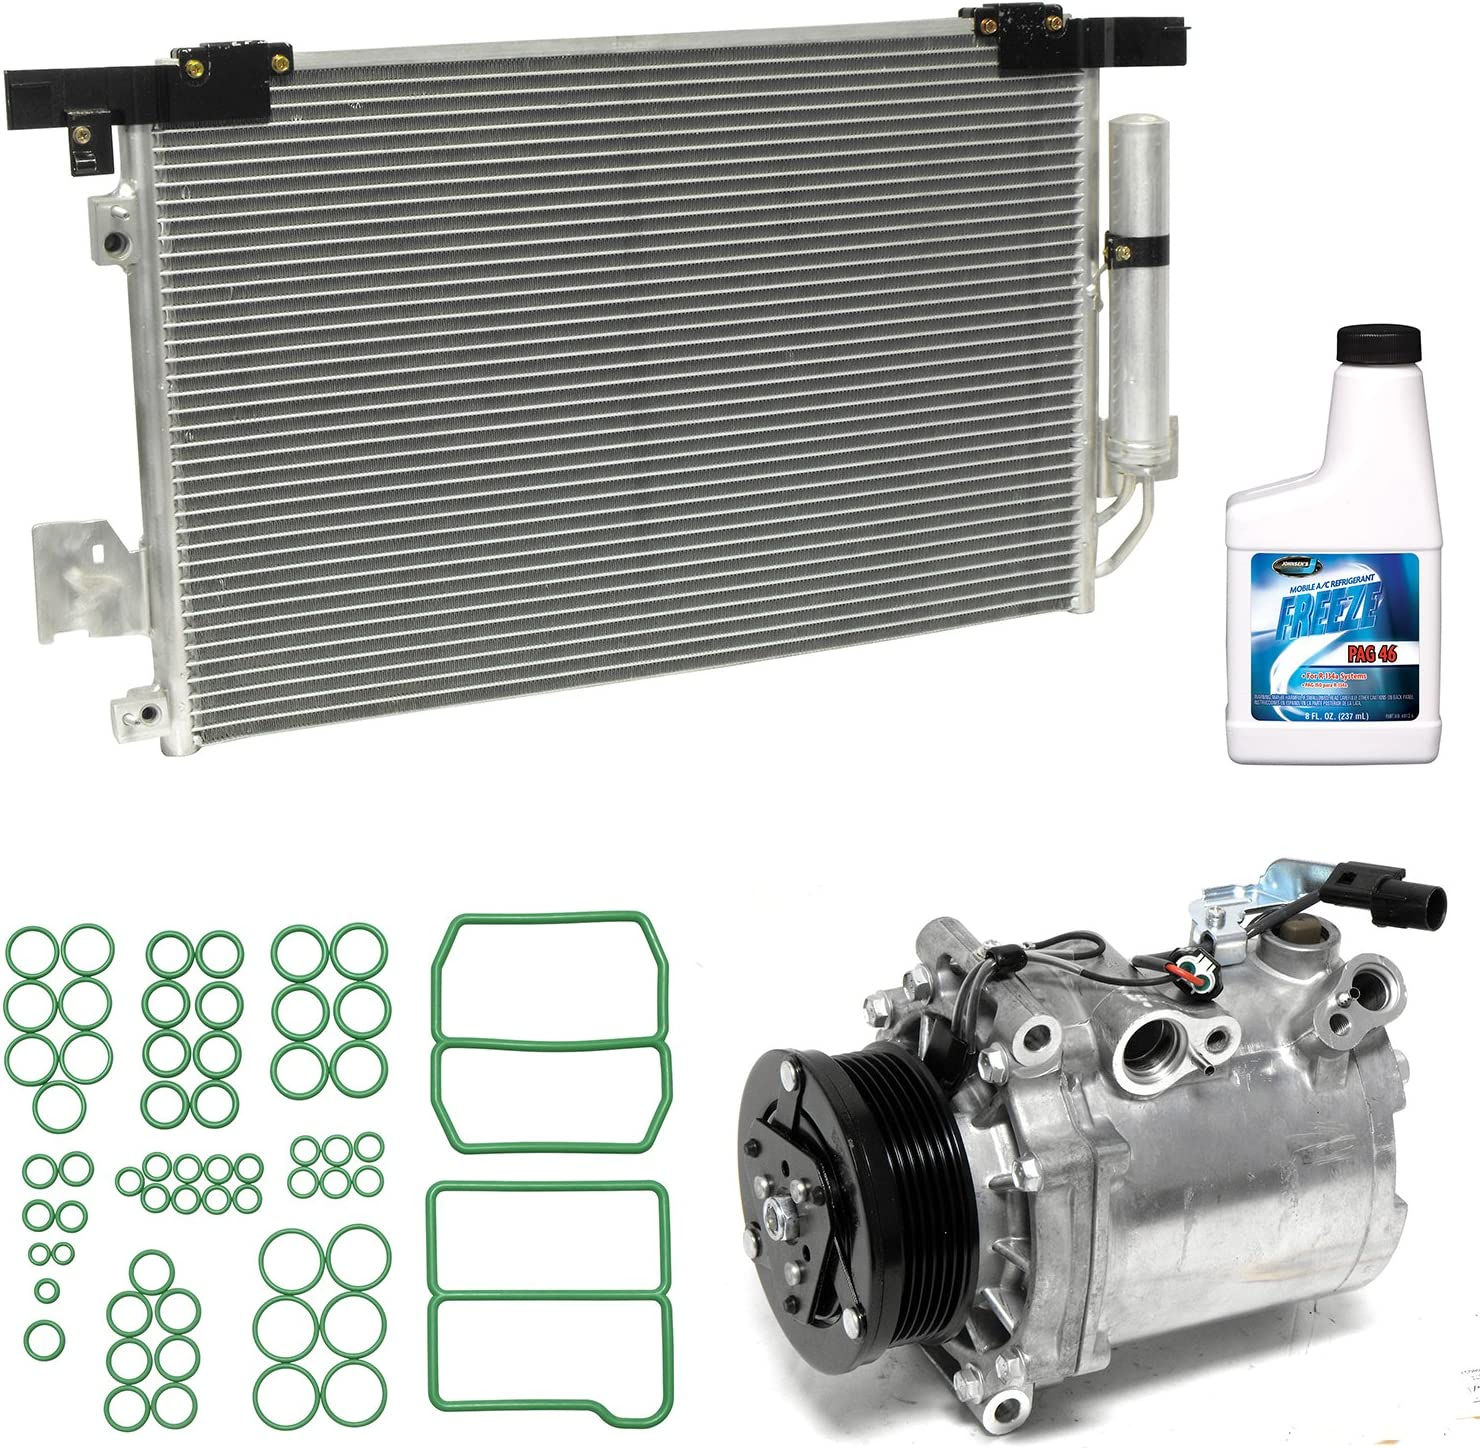 Universal Air Conditioner KT 4742A Kit A Columbus Mall Compressor C New product Component